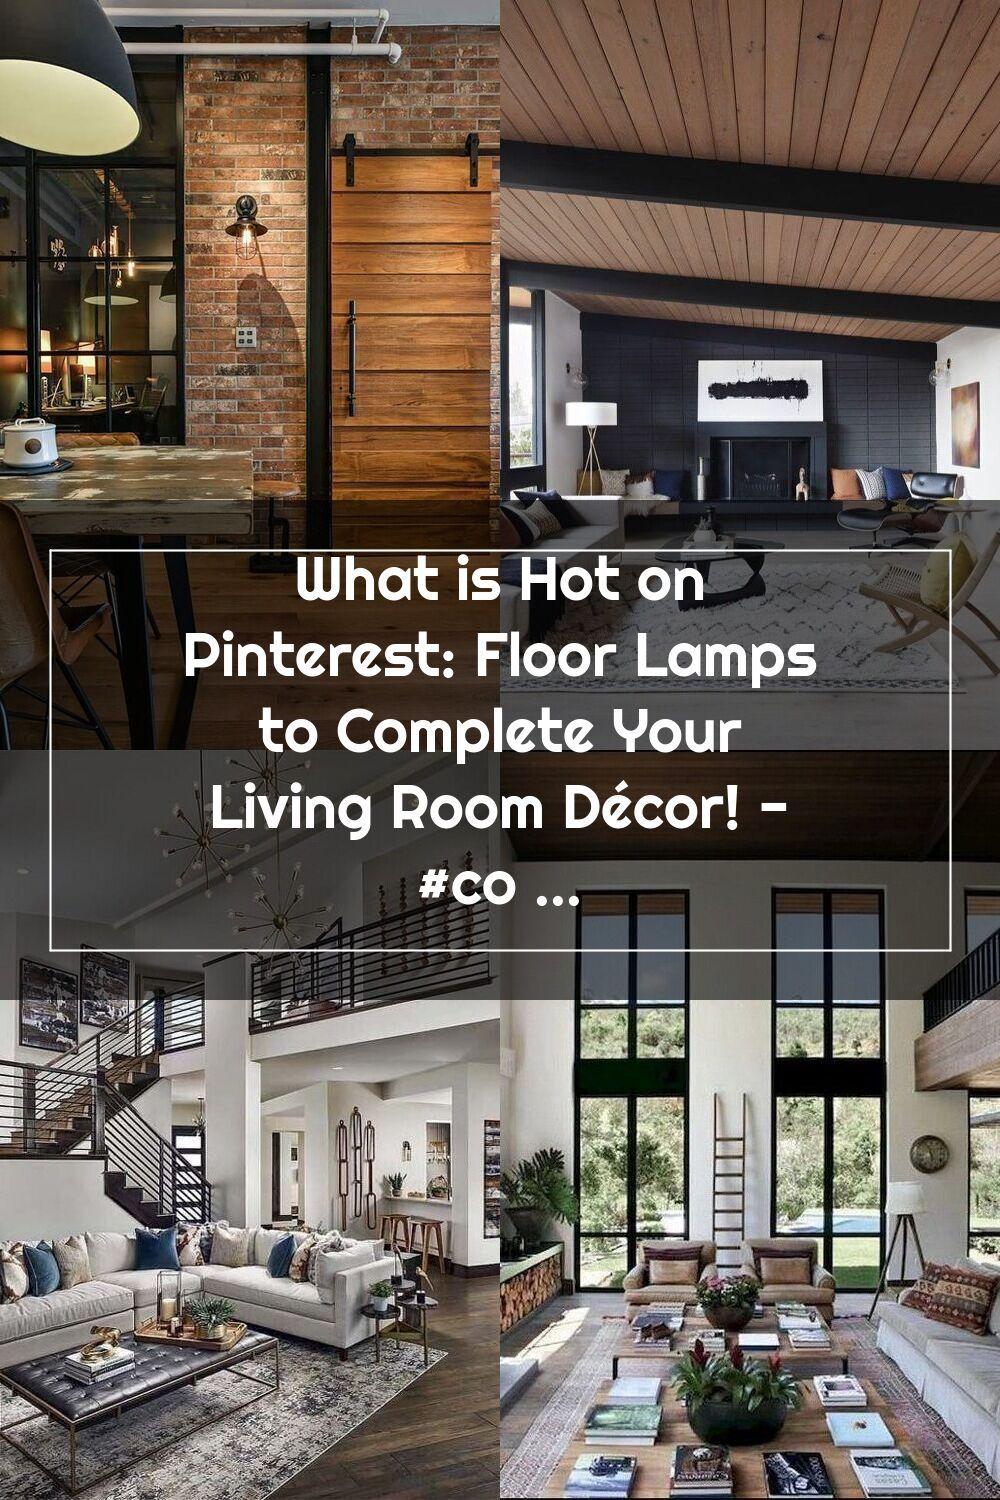 What is Hot on Pinterest: Floor Lamps to Complete Your ...